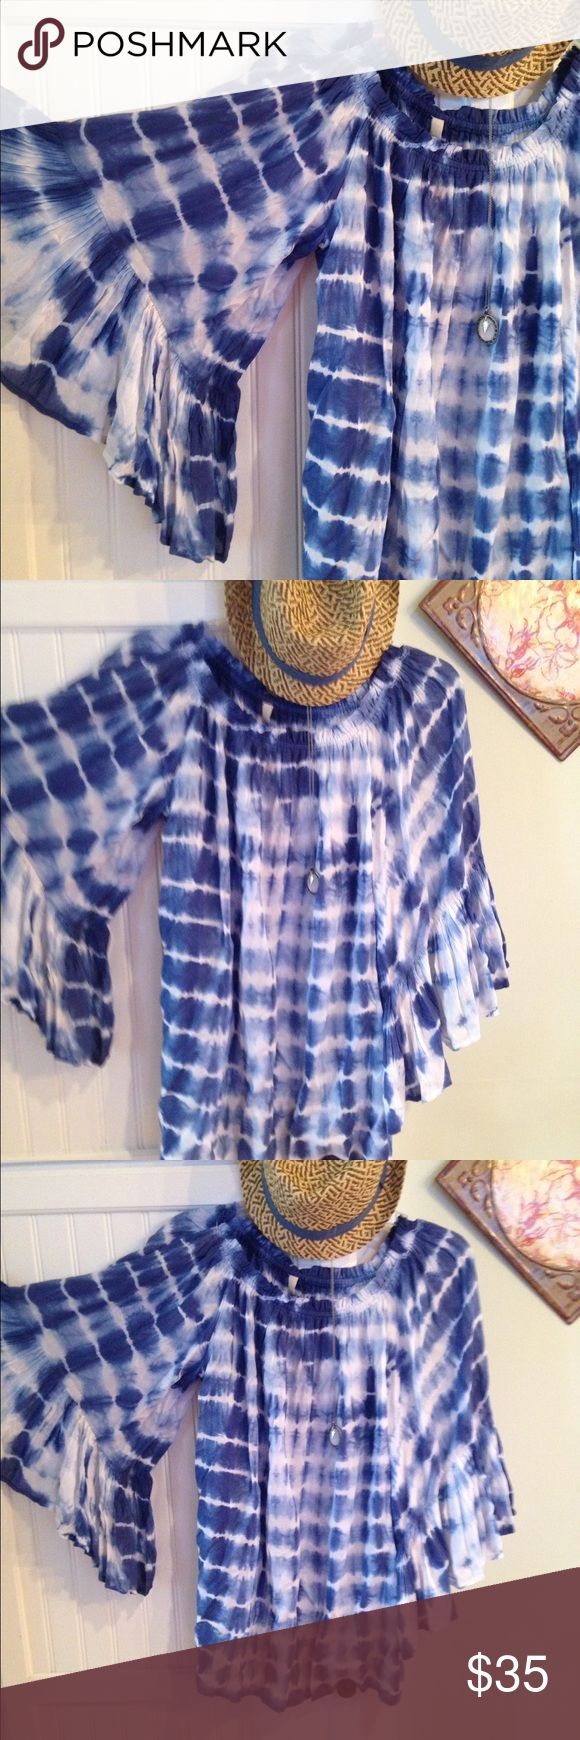 Brand new w/ tags Elan mini Dress/Tunic What a cool boho tie dyed mini dress or tunic. It has the most awesome big bell sleeves. With elastic around the top so you can wear it off the shoulder. Or with a white cami. The colors are rich beautiful blue's and white. The length is 26 1/2 inches. Hart sold separately. This is a size S. But could easily fit a M. too. Bought from Evereve elan Dresses